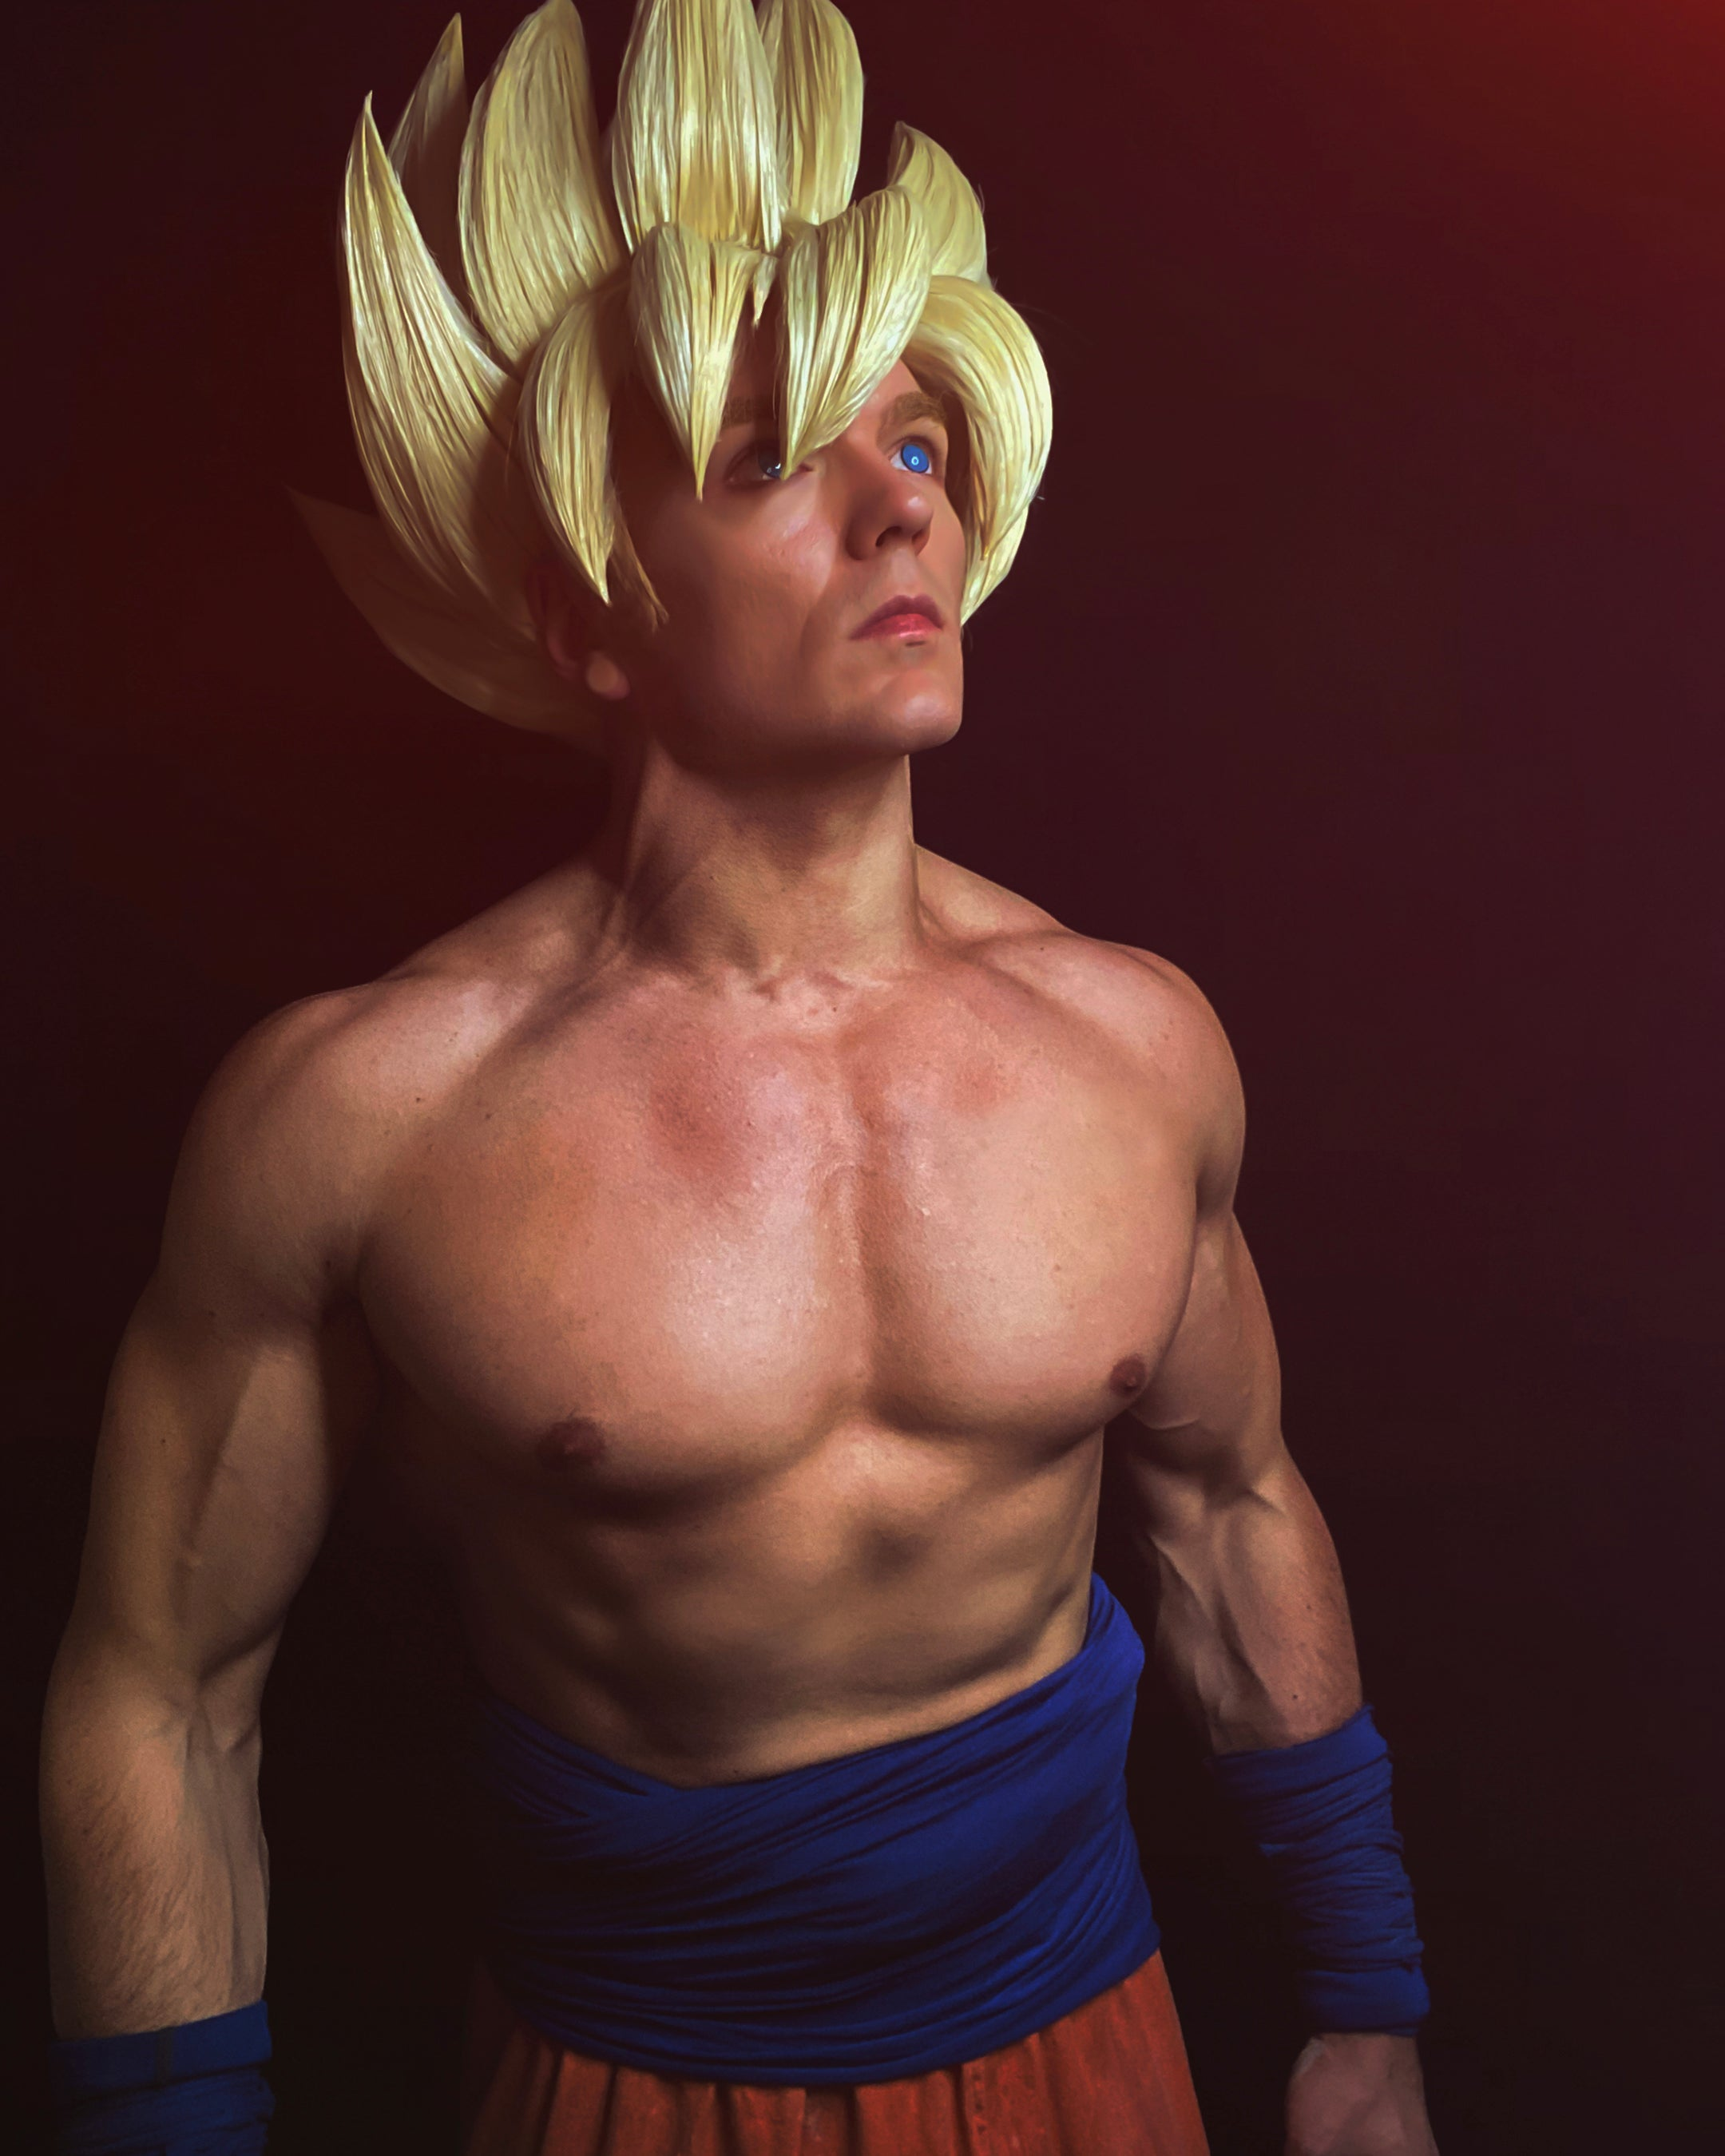 Son Goku cosplayer teaches you how to get fit by using anime as inspiration